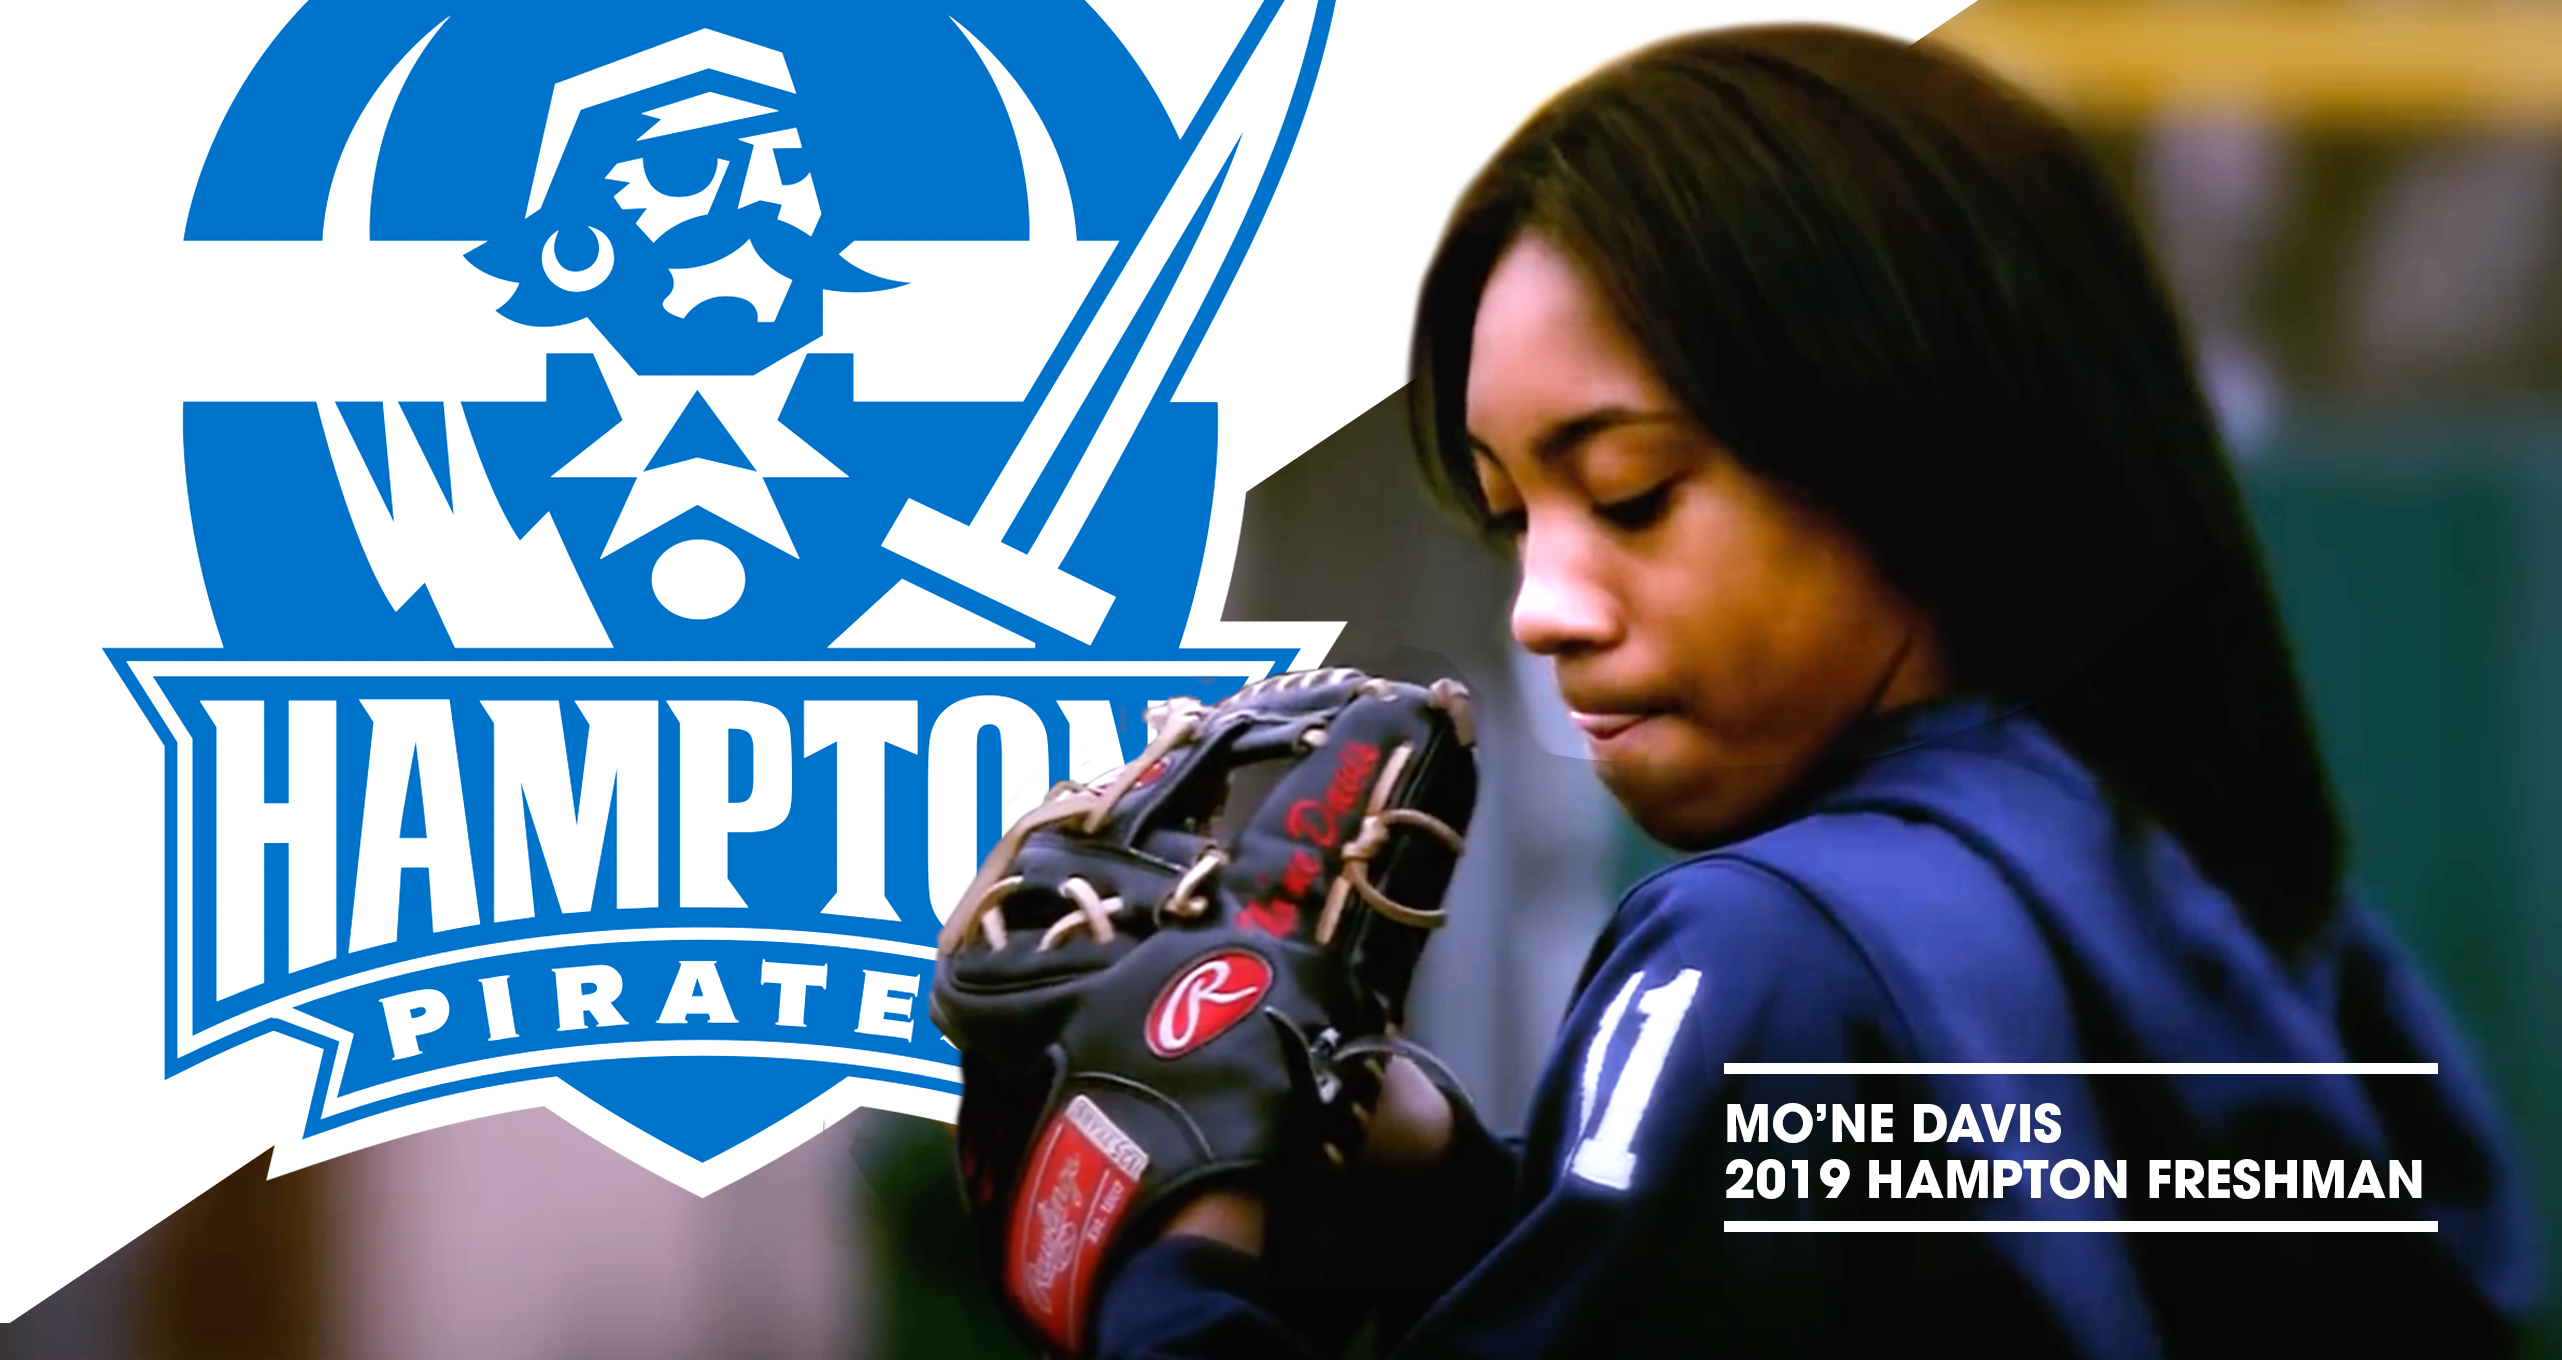 Mo'ne Davis is Gonna be a Pirate